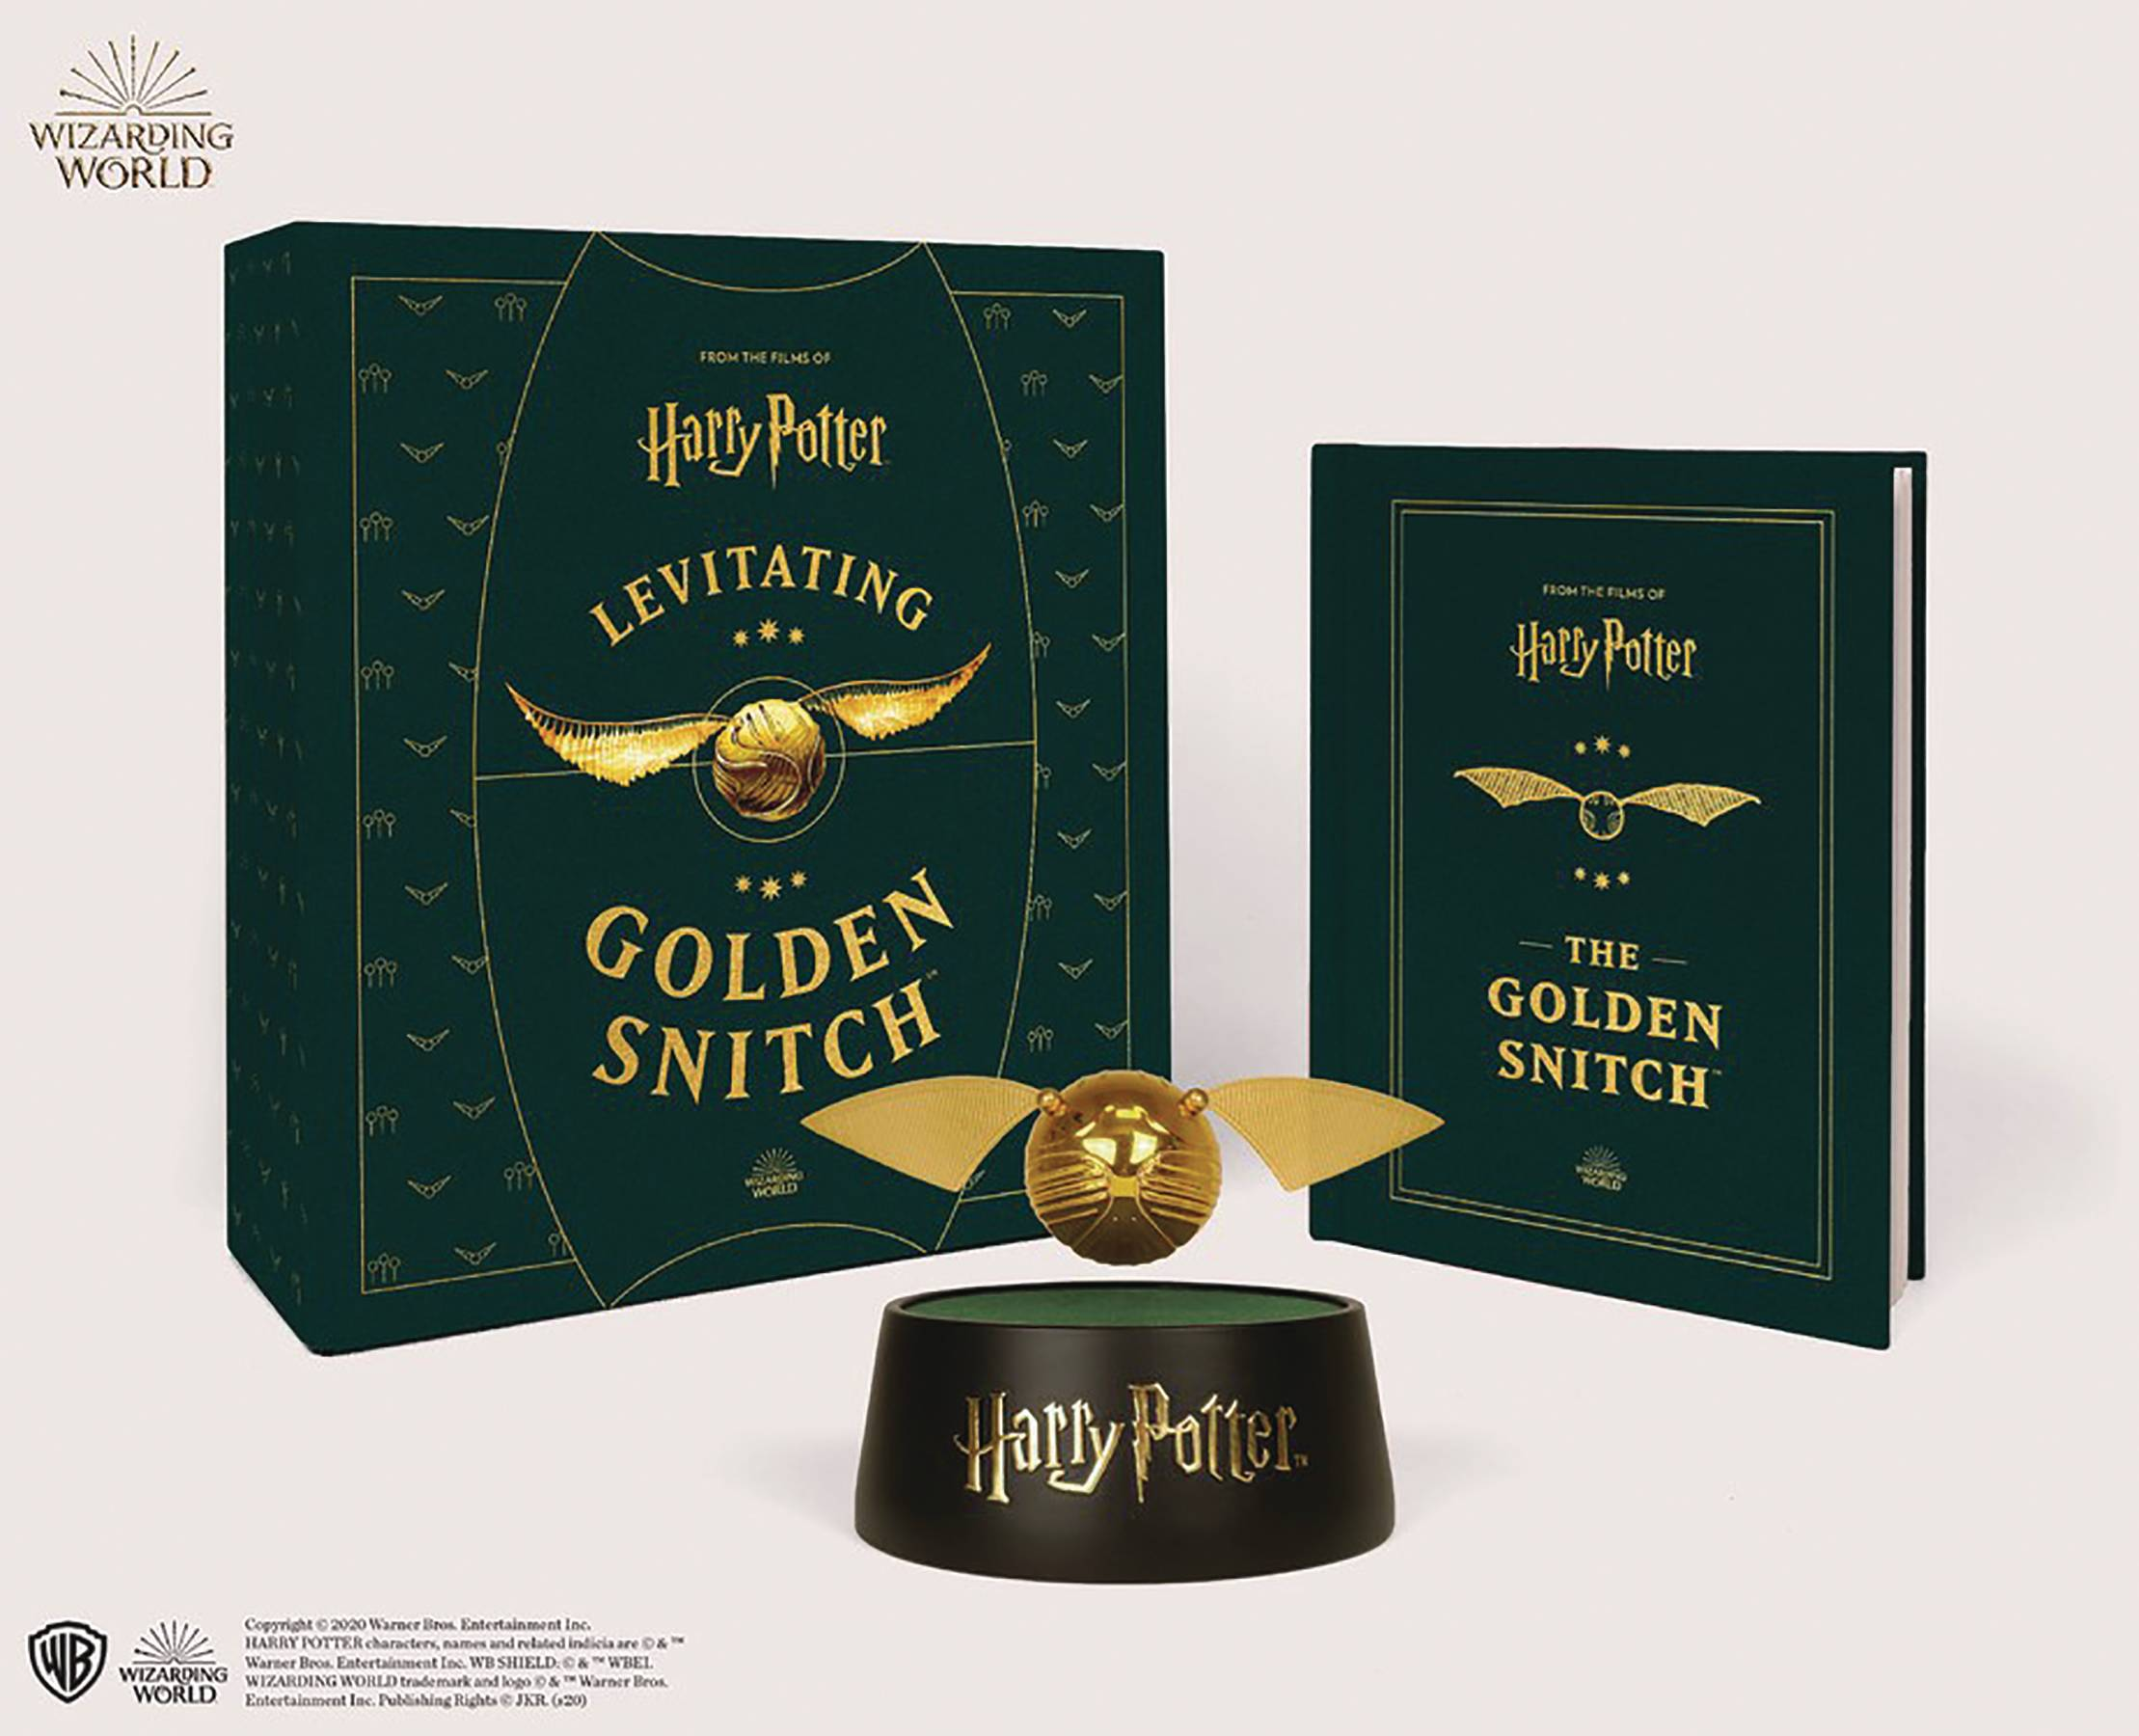 HARRY POTTER LEVITATING GOLDEN SNITCH W BOOK